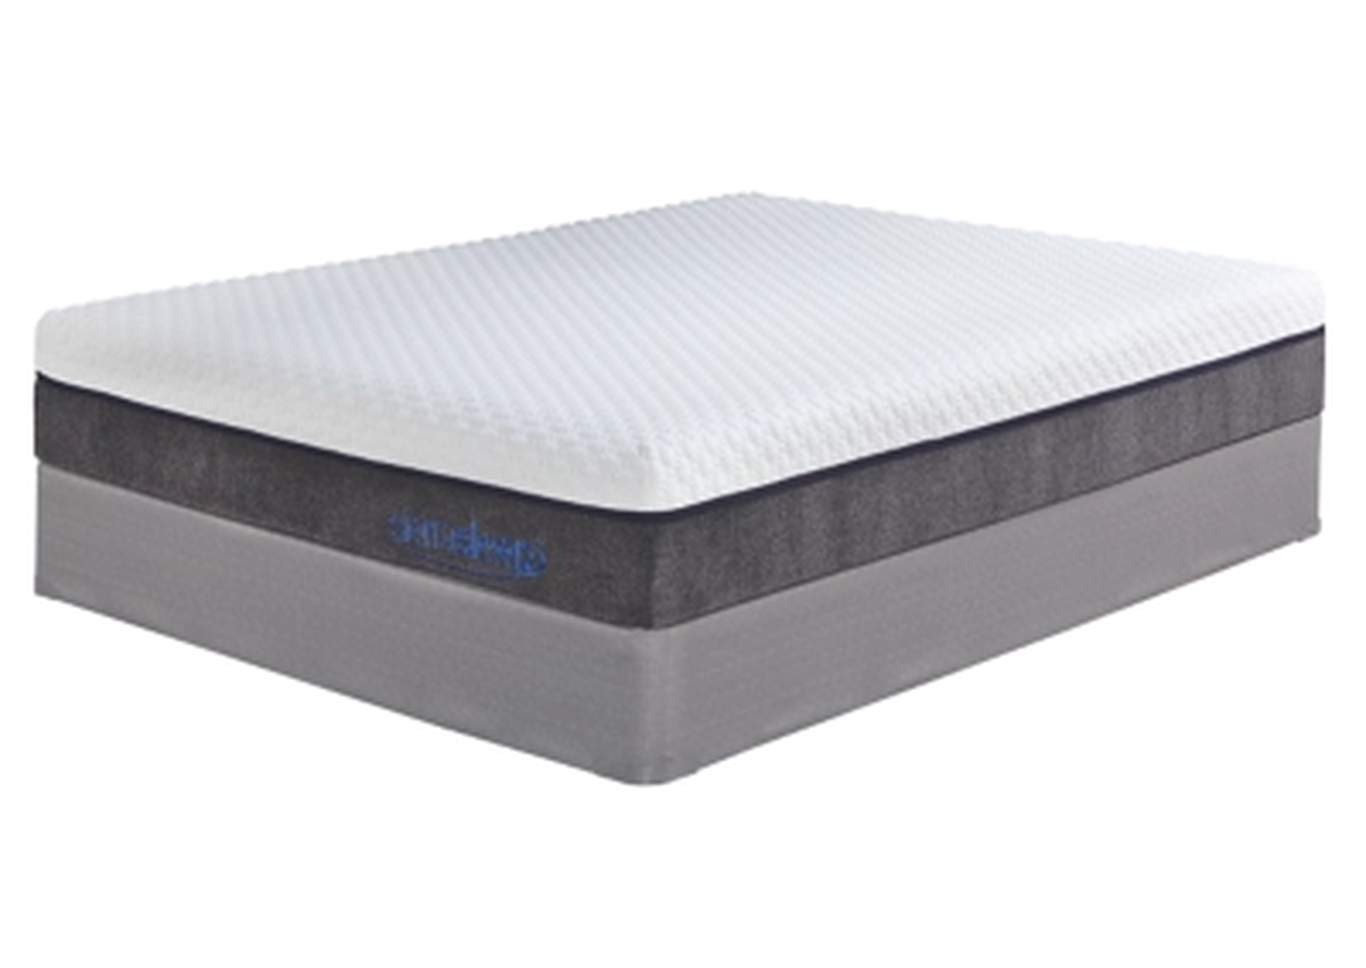 Mygel Hybrid 1100 Full Mattress w/Foundation,Sierra Sleep by Ashley